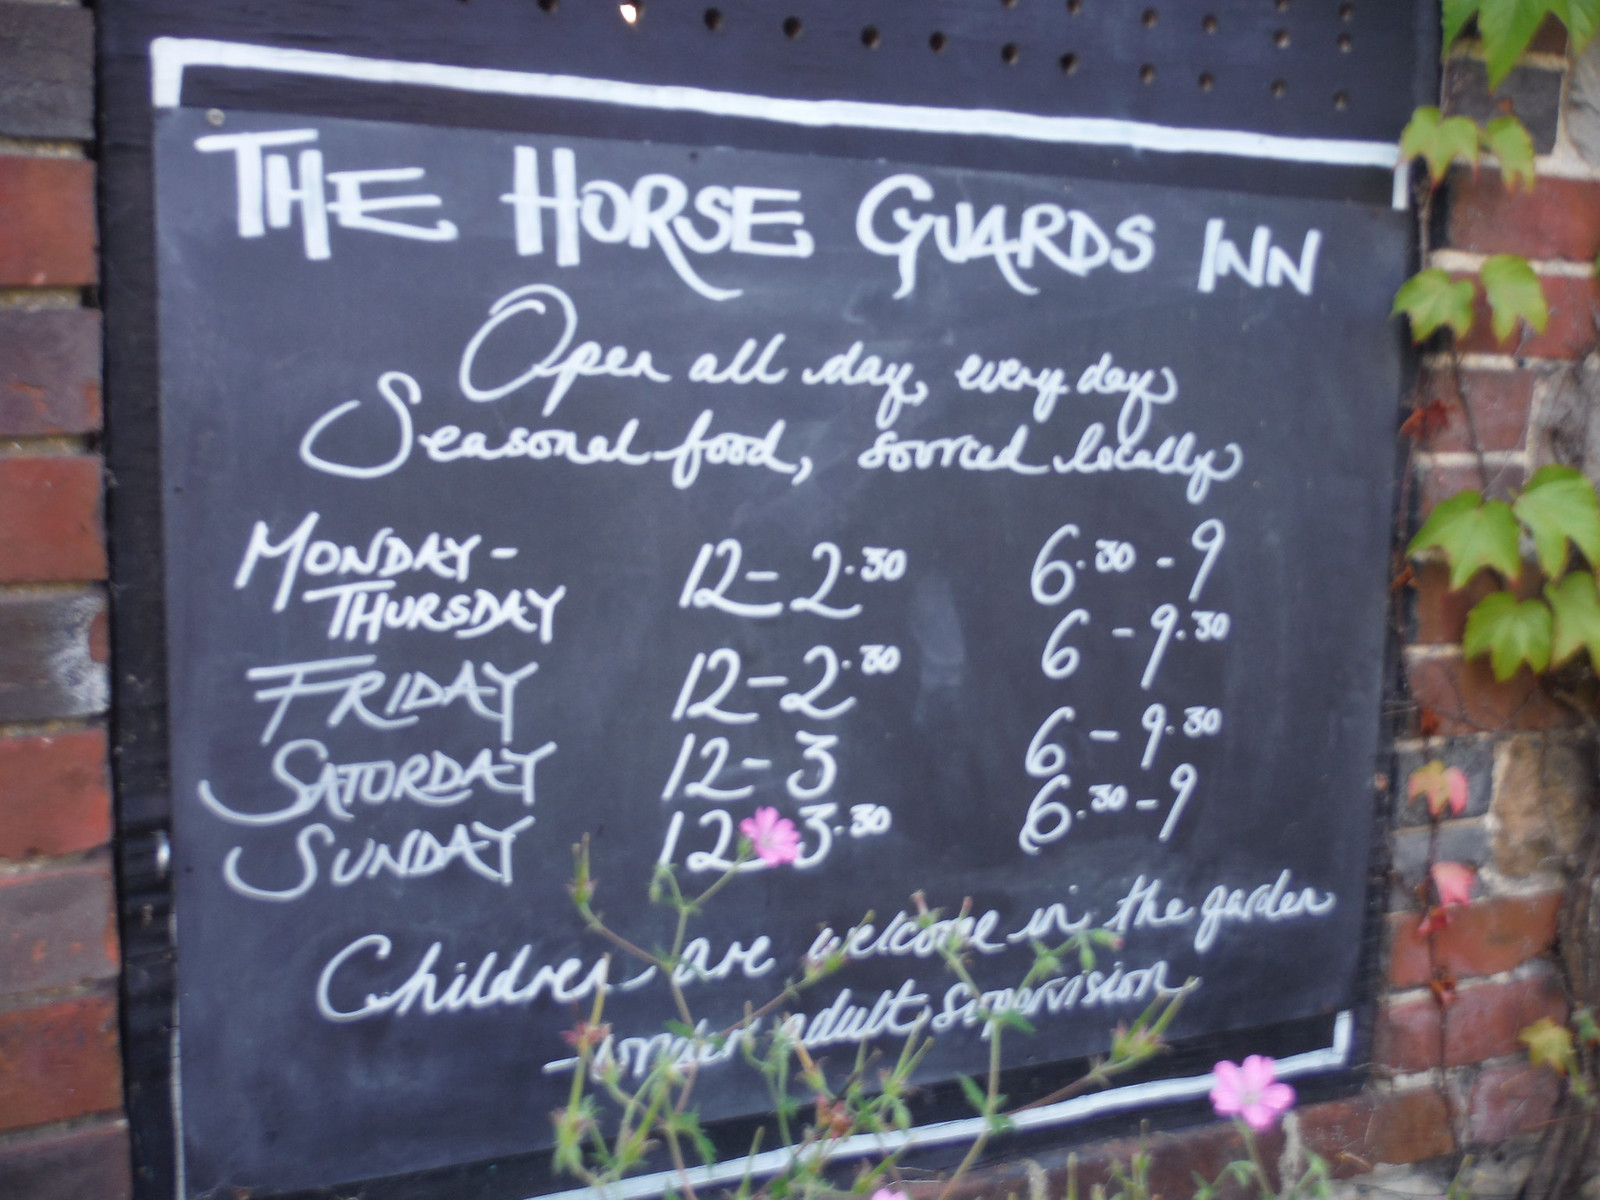 Horse Guards Inn, Tillington SWC Walk 217 Midhurst Way: Arundel to Midhurst